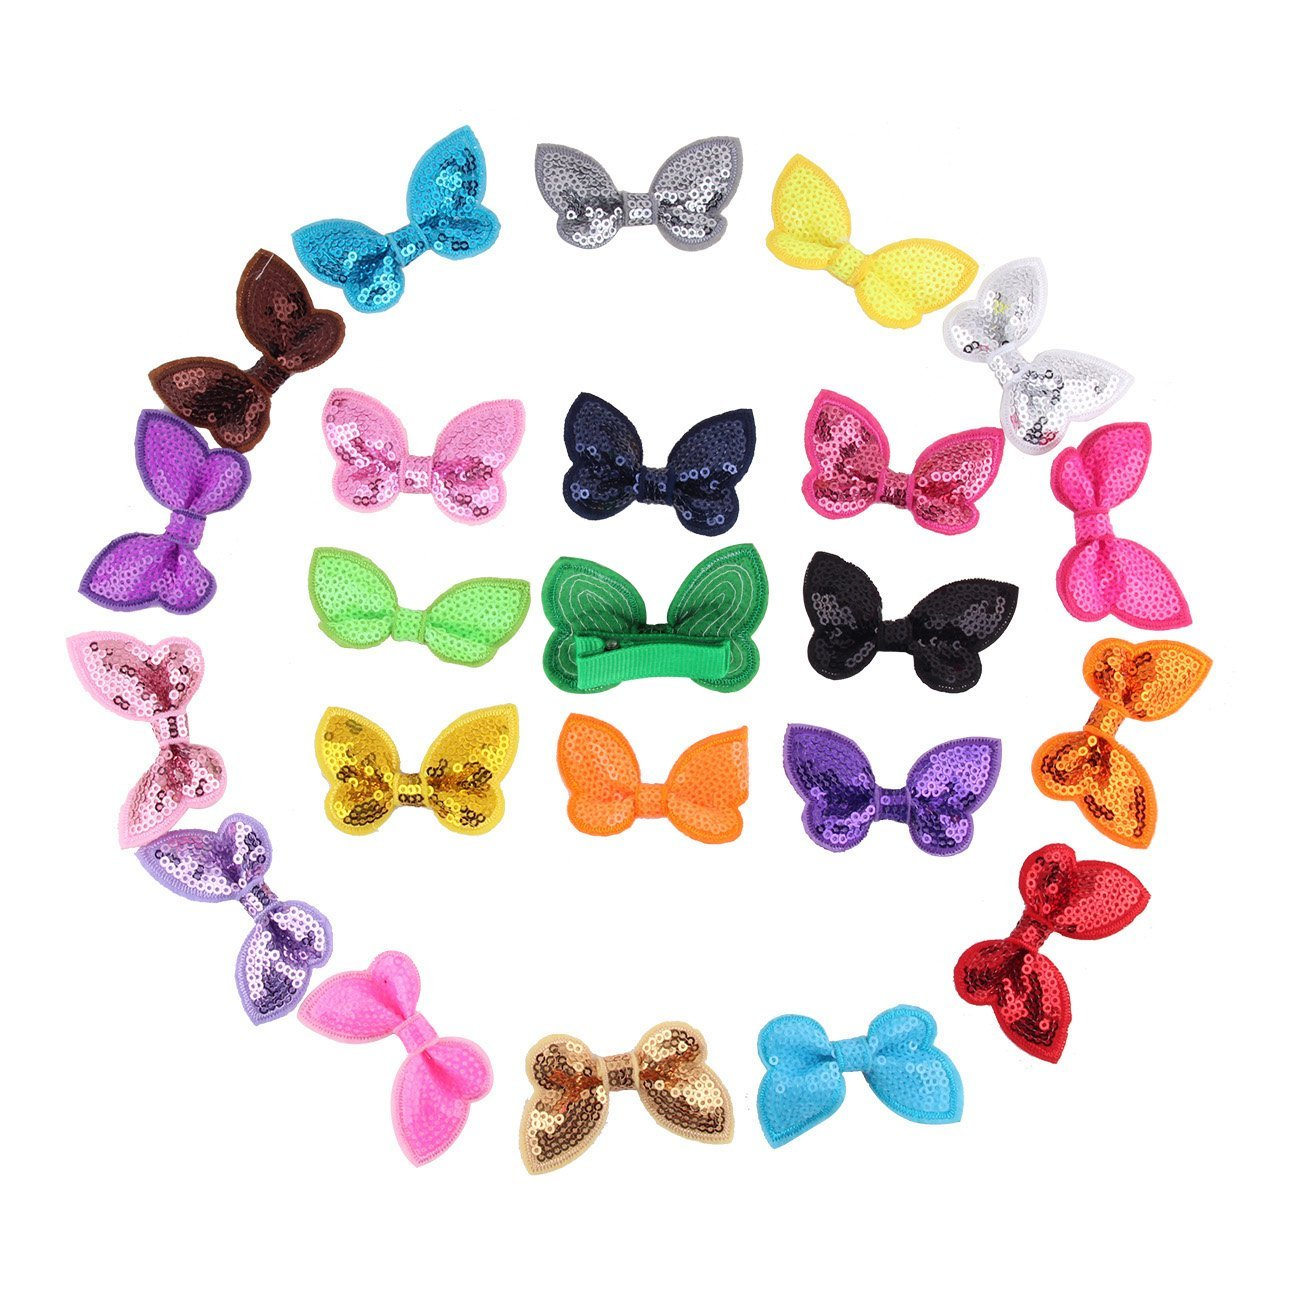 "Candygilr(tm) Little Girls' Paillette Sequin Hair Bow Appliques Sequin Barrettes Girls Hair Clips Pack of 15 (butterfly bow 2.3"" mix 23 pcs)"